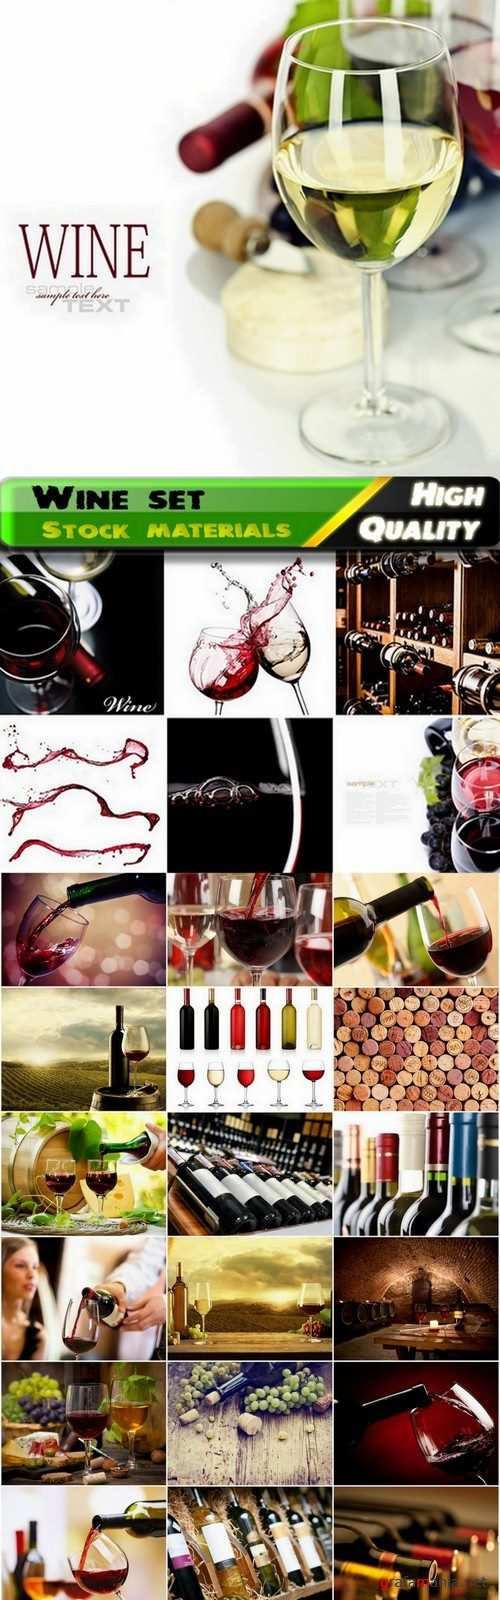 White and red wine in glasses and bottles and wine cellars - 25 HQ Jpg